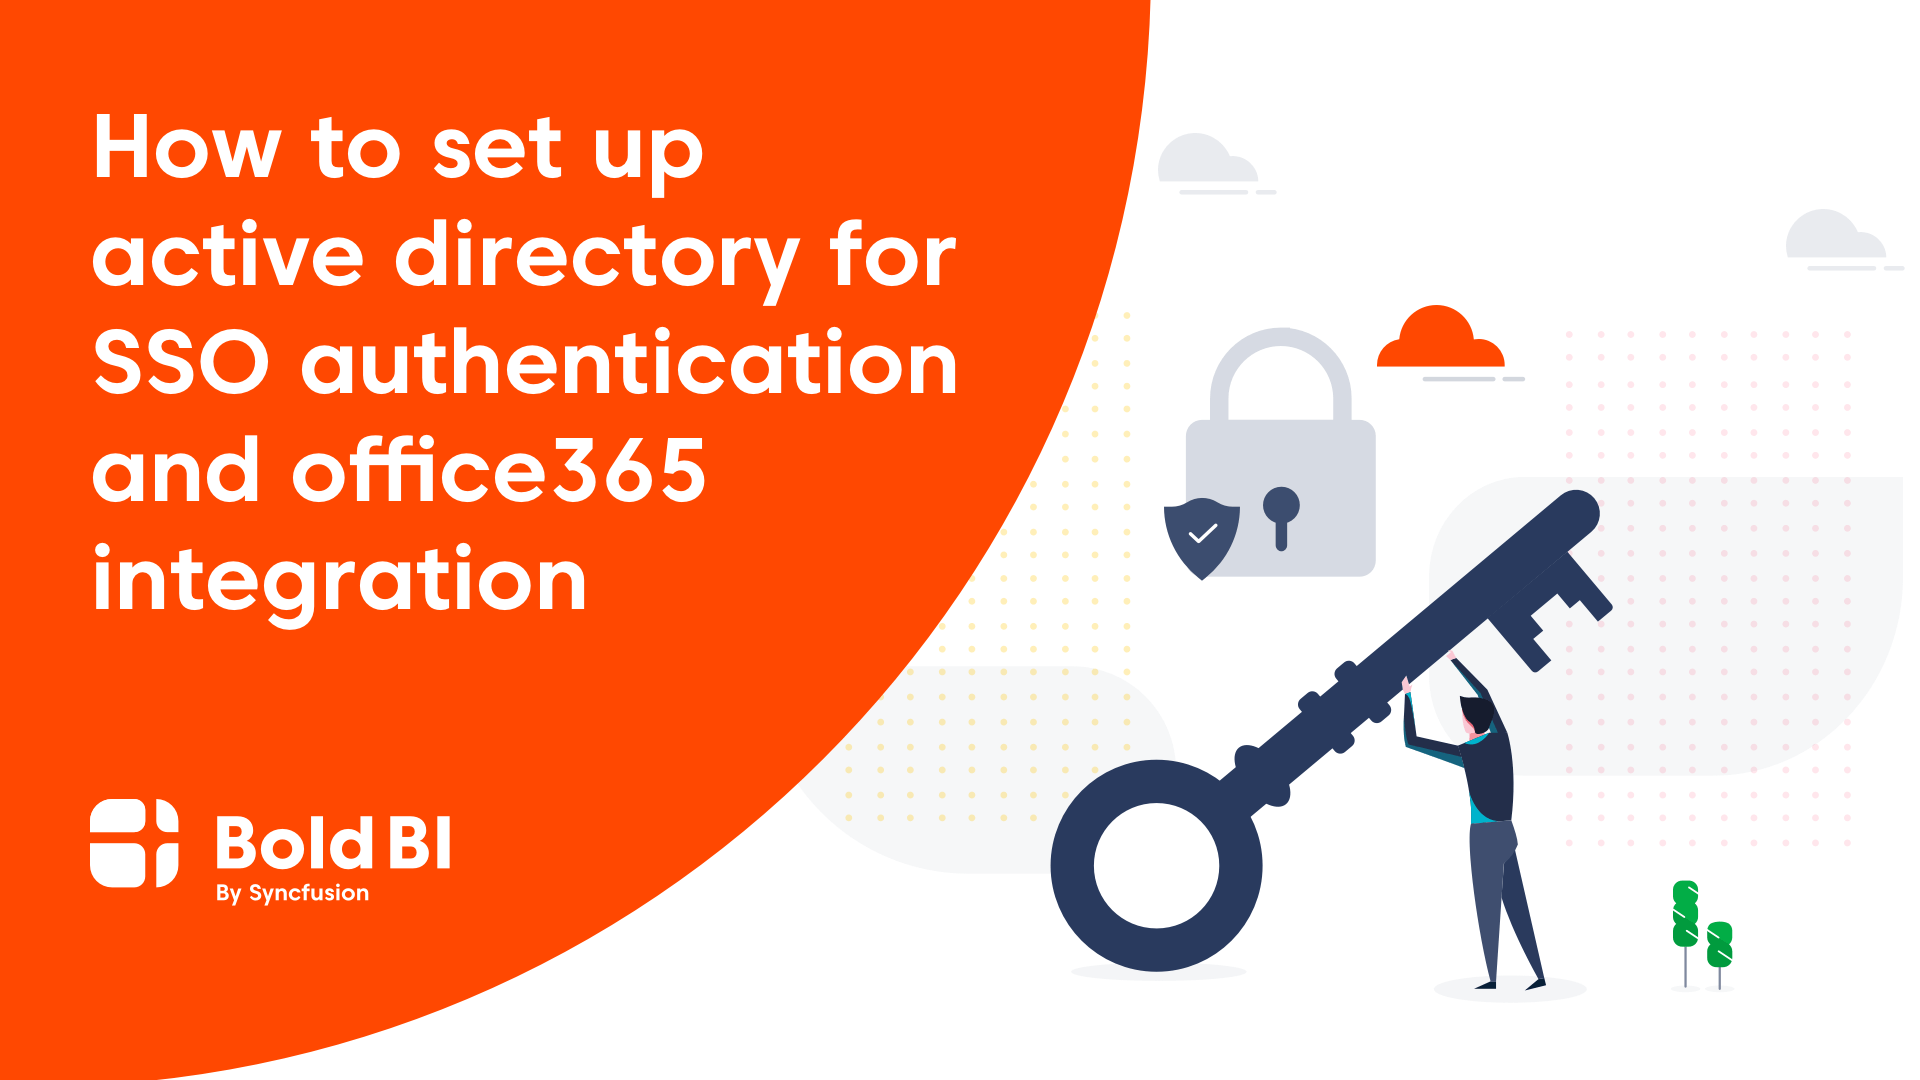 How to Set up Active Directory for SSO Authentication and Office 365 Integration in Enterprise BI